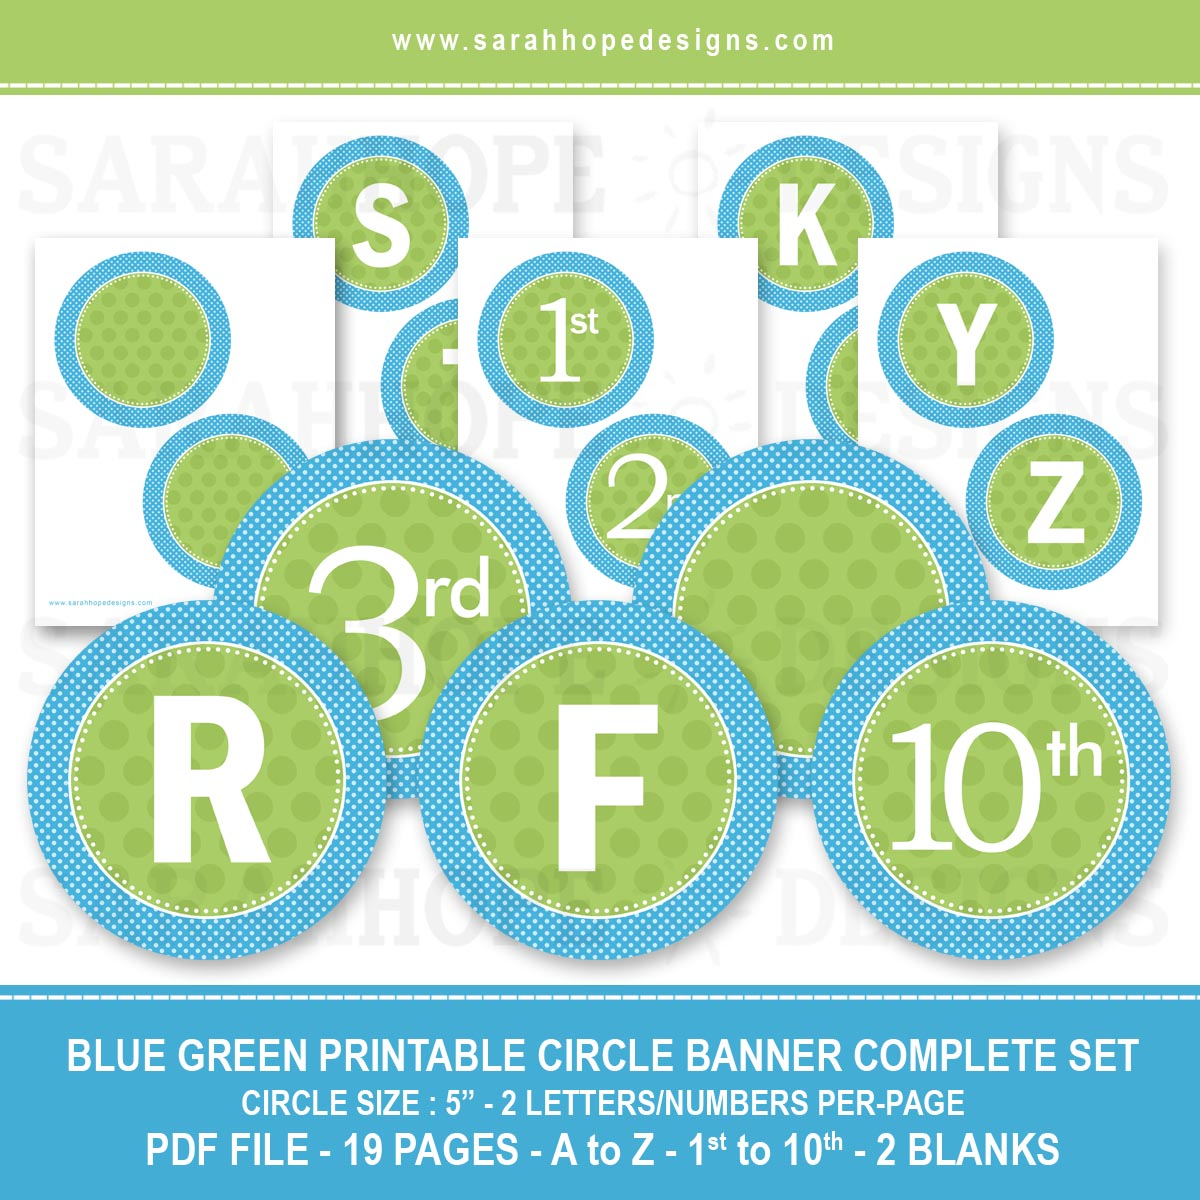 graphic about Printable Letter for Banners named Spell Out Just about anything With such Totally free Alphabet Circle Banners